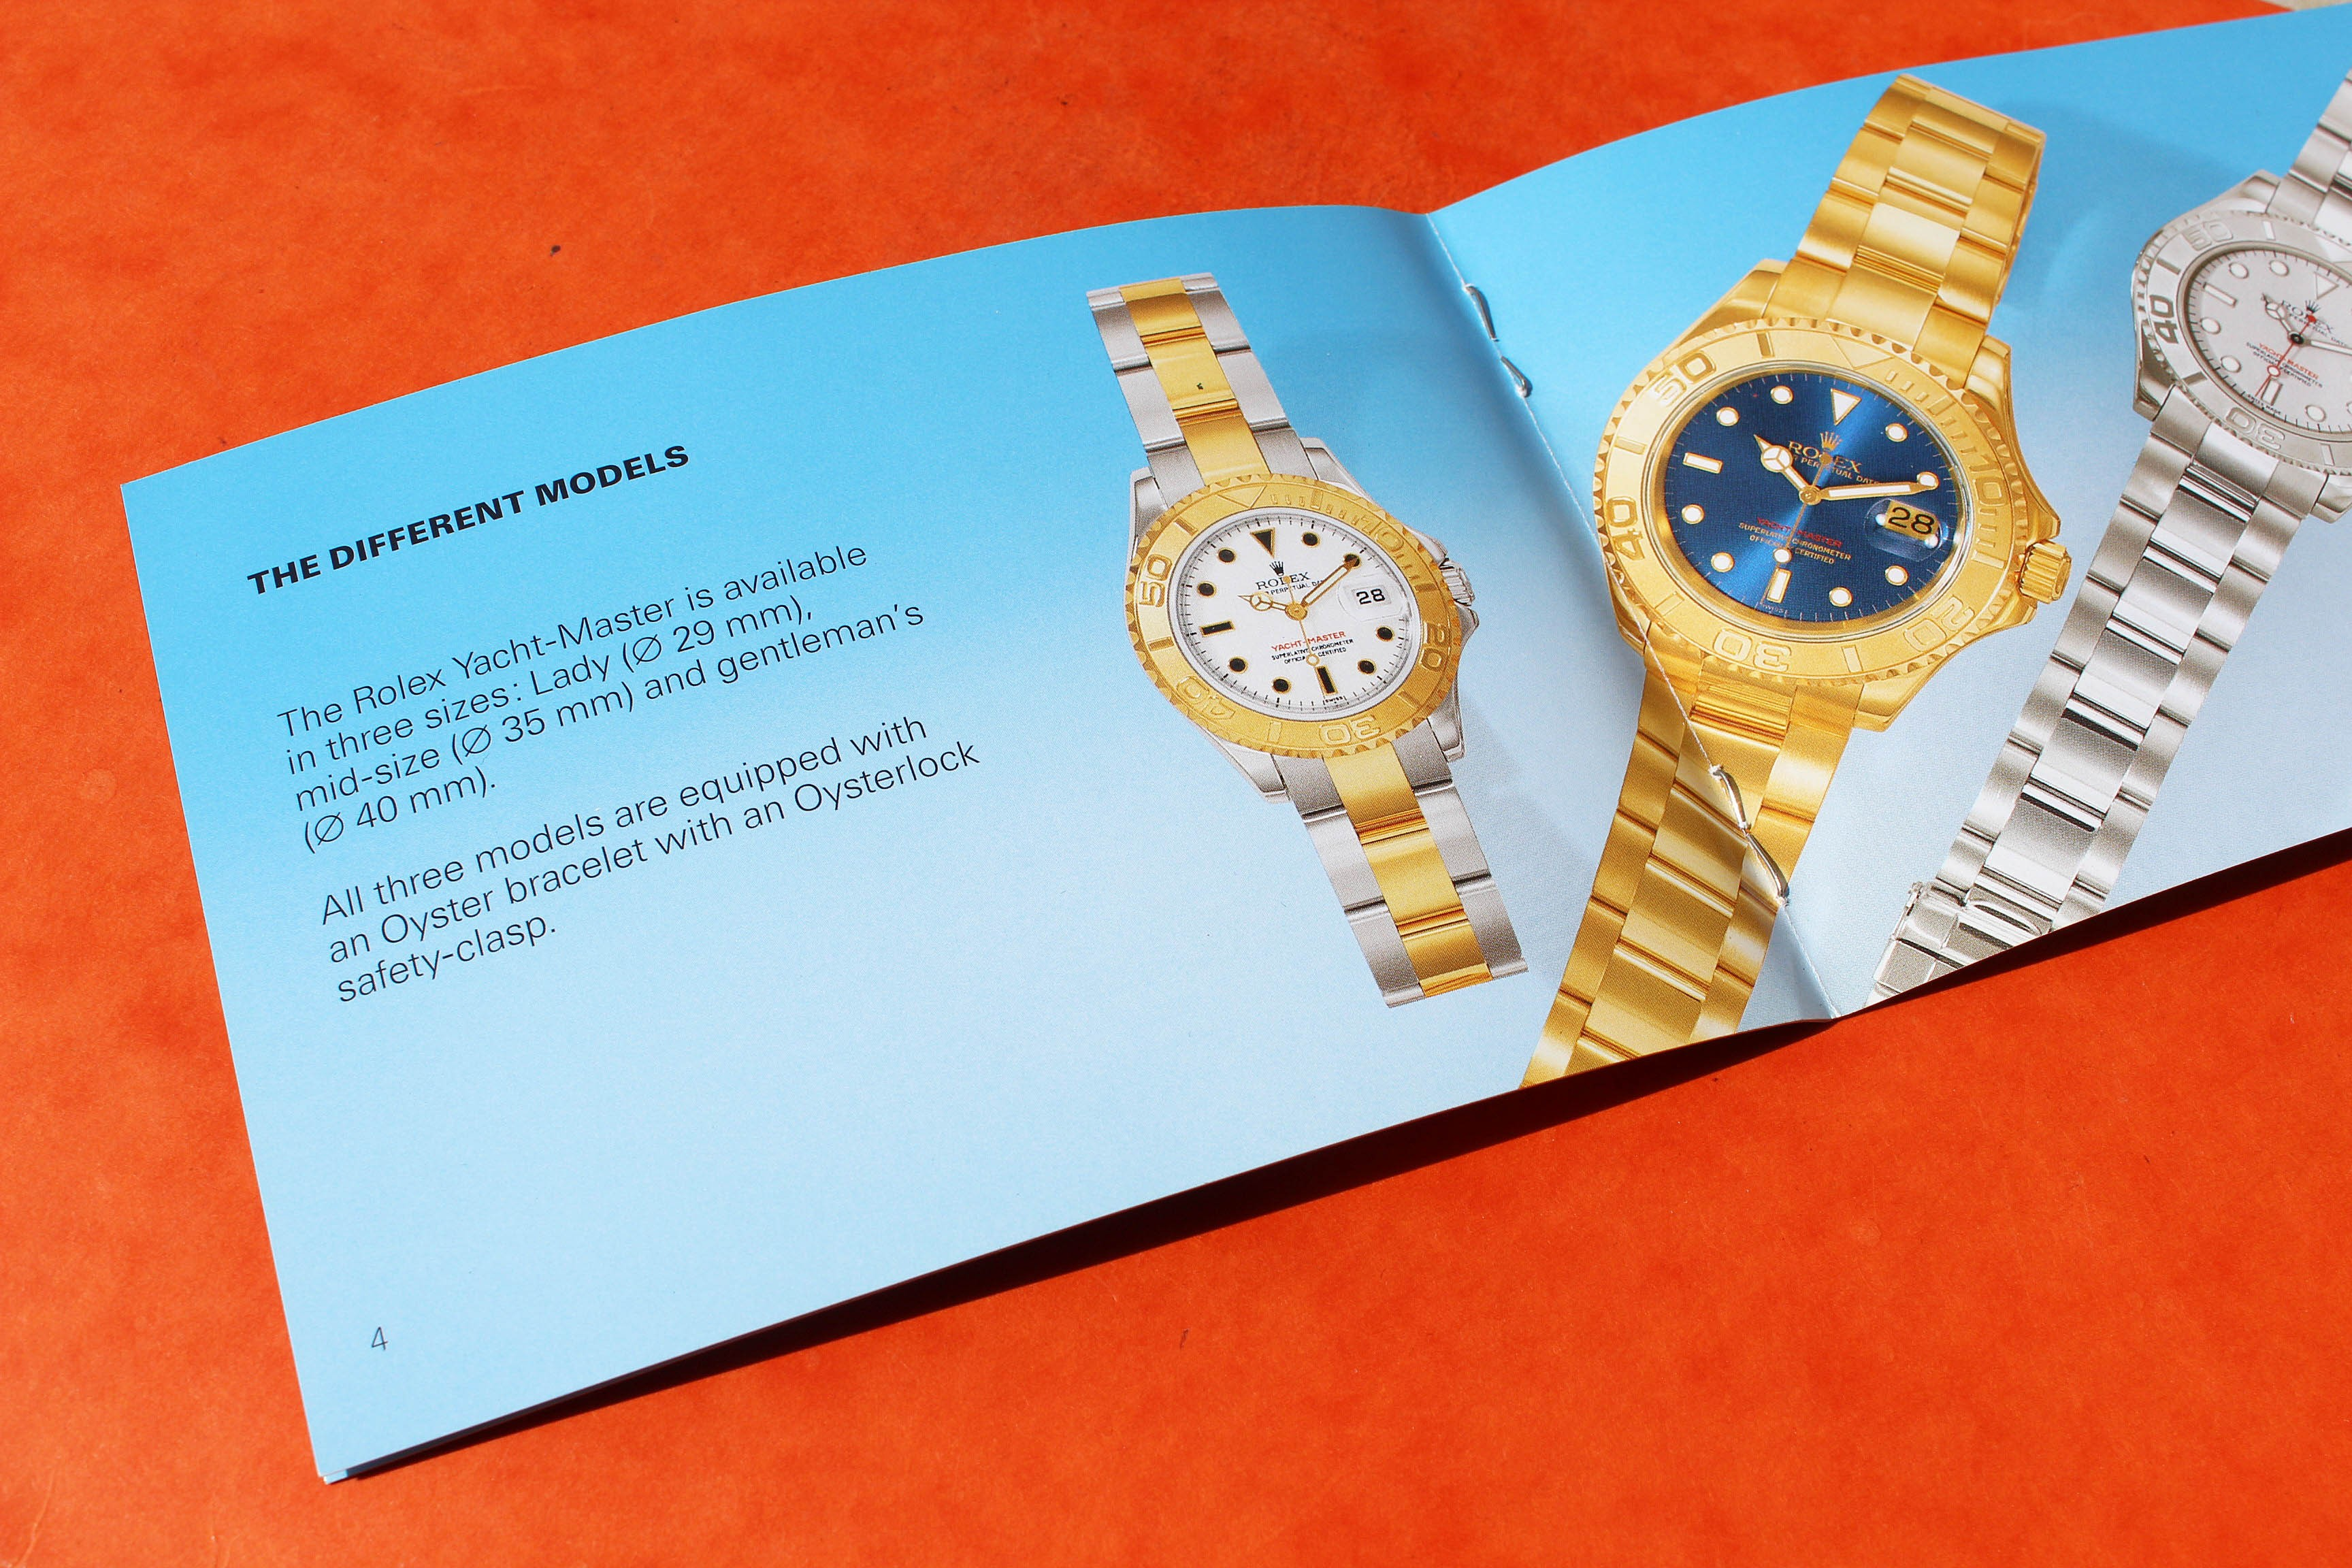 Rolex Yachtmaster Manual Booklet English 16622, 16623, 16628, 68623, 68628, 69623, 69628, 168622, 168623, 168628, 169622, 116622